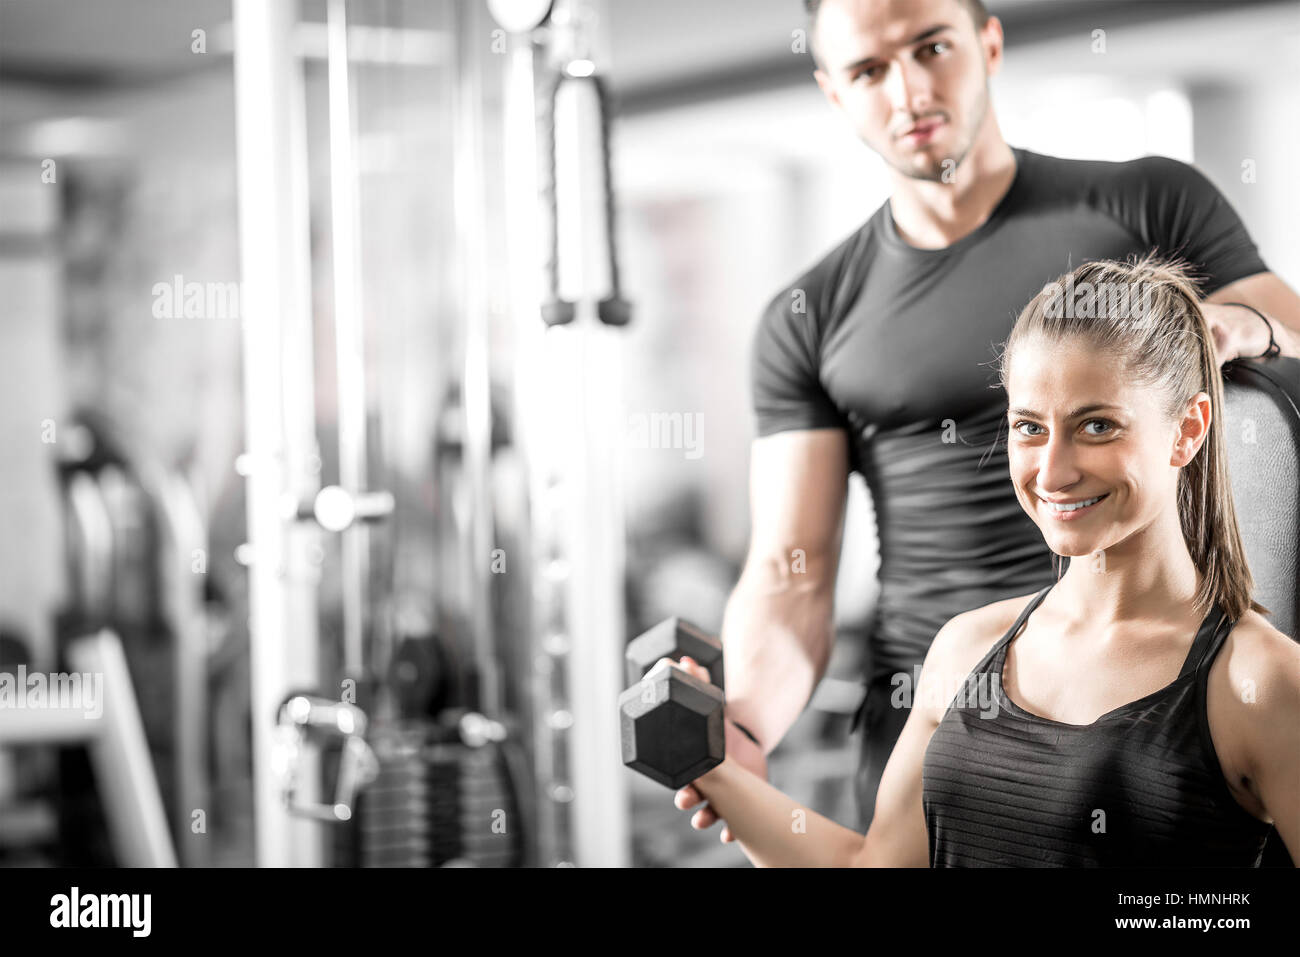 Young adult woman working out in gym, doing bicep curls with help of her personal trainer. - Stock Image